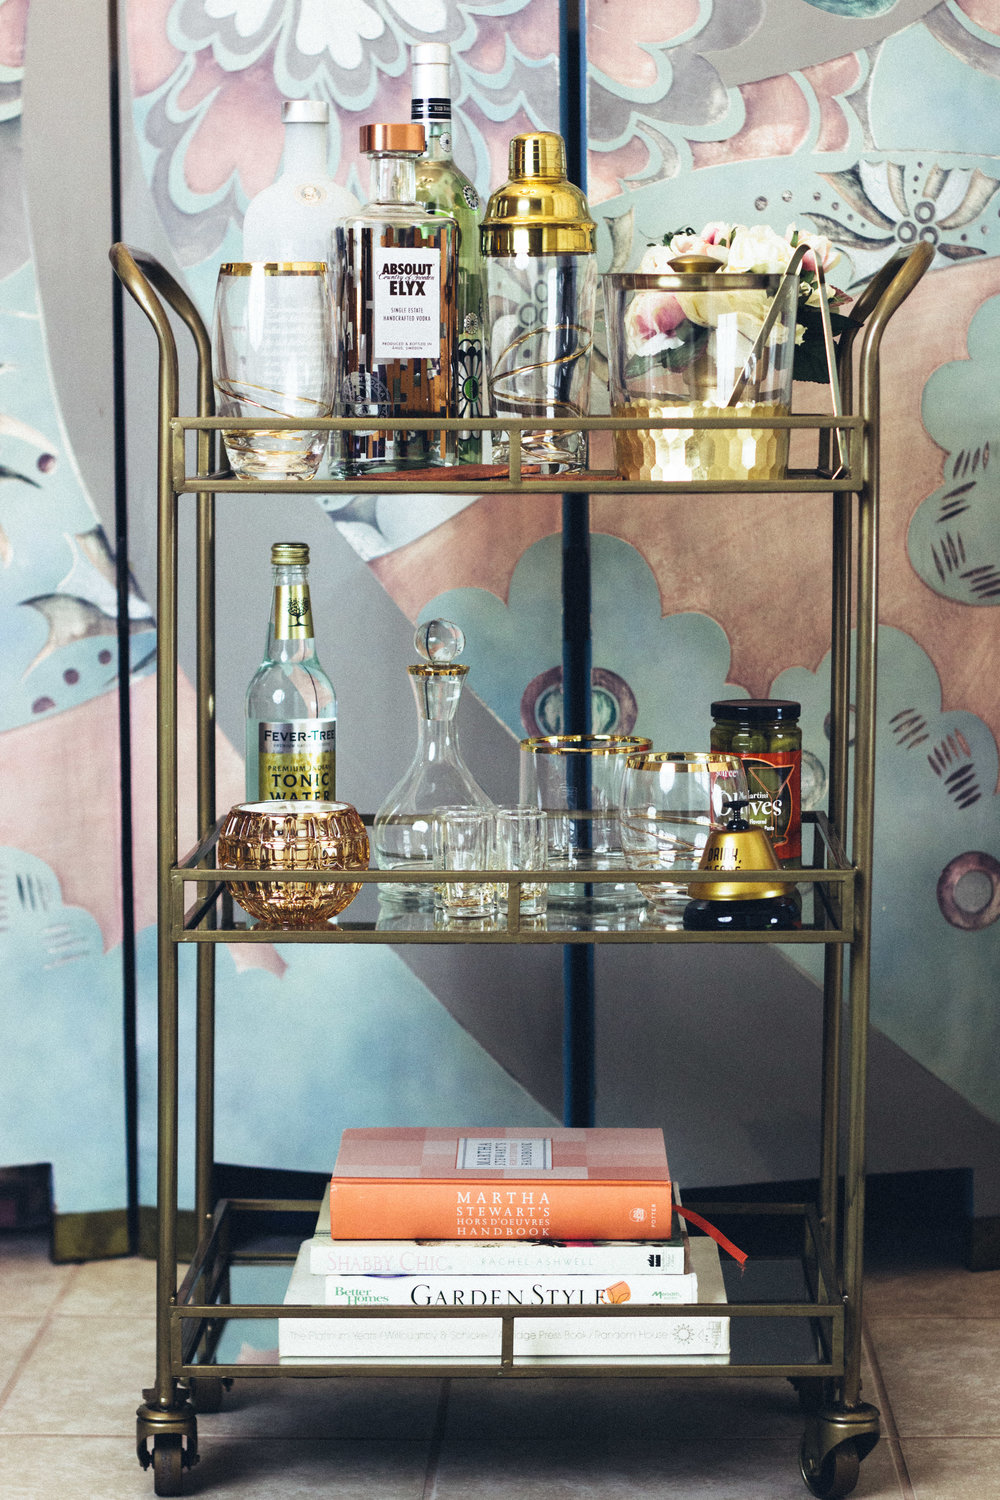 At Home Pop-Up Bar with The Gilded Bellini